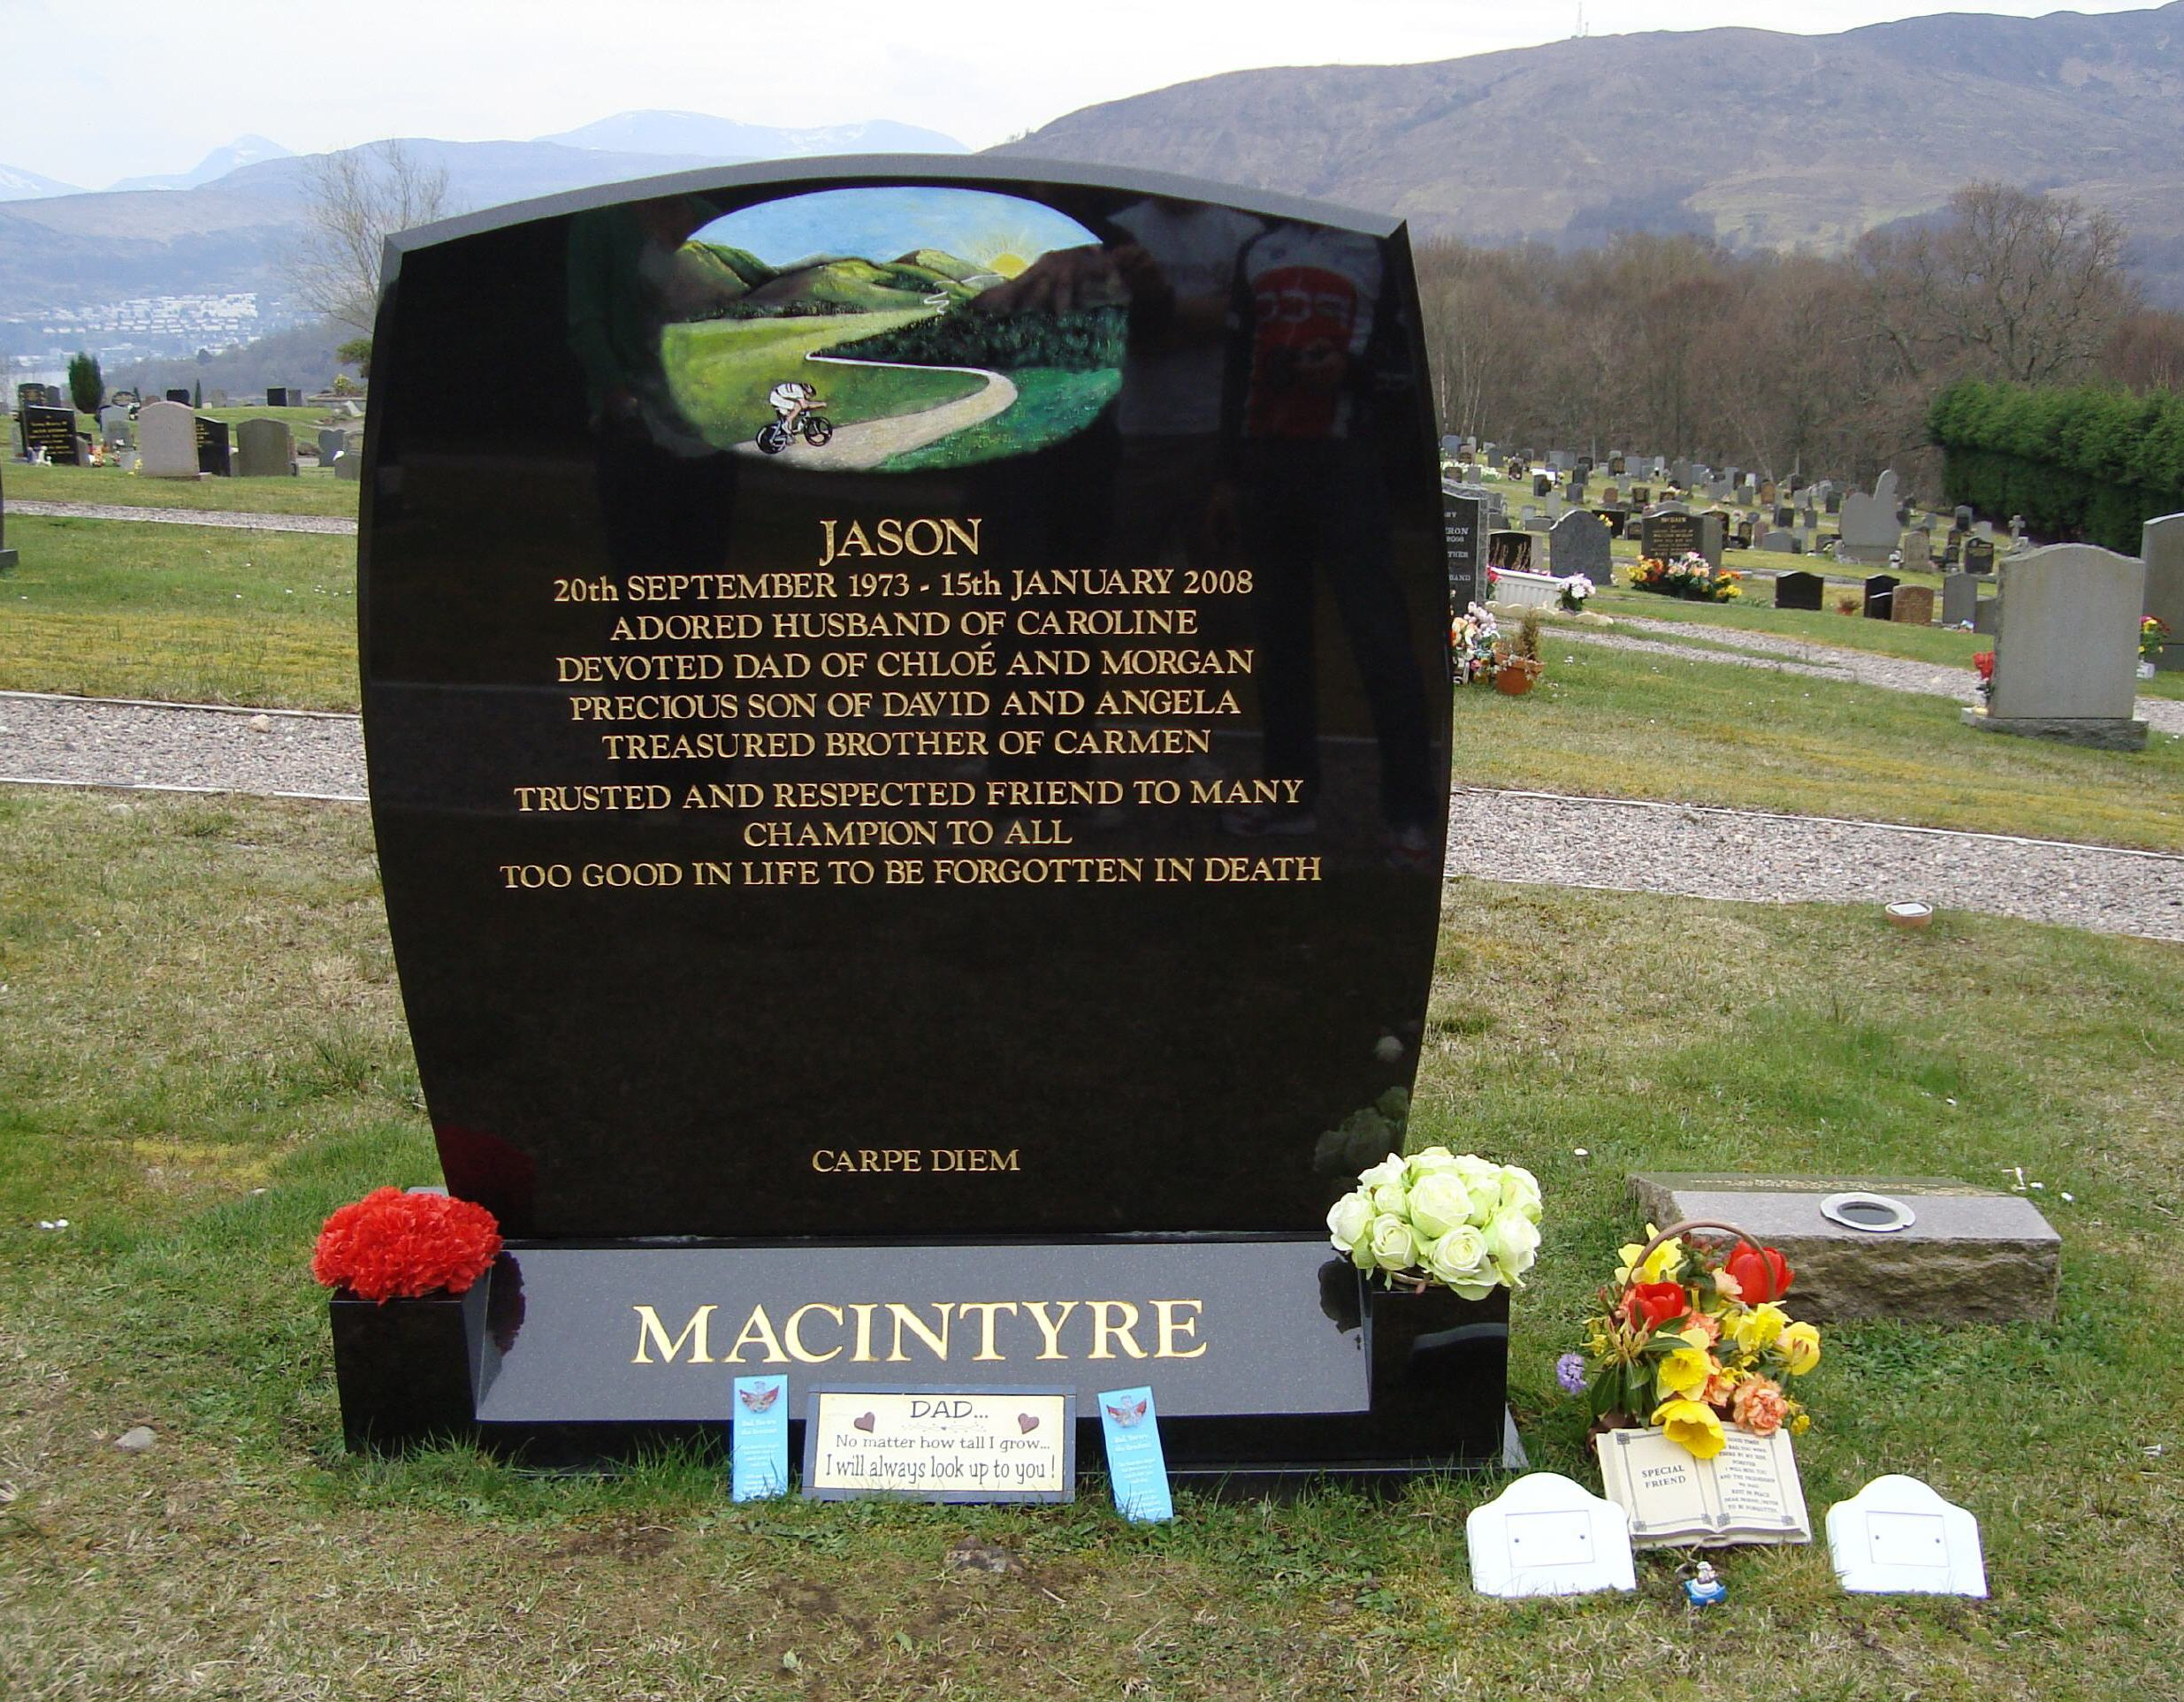 Memories of Jason MacIntyre